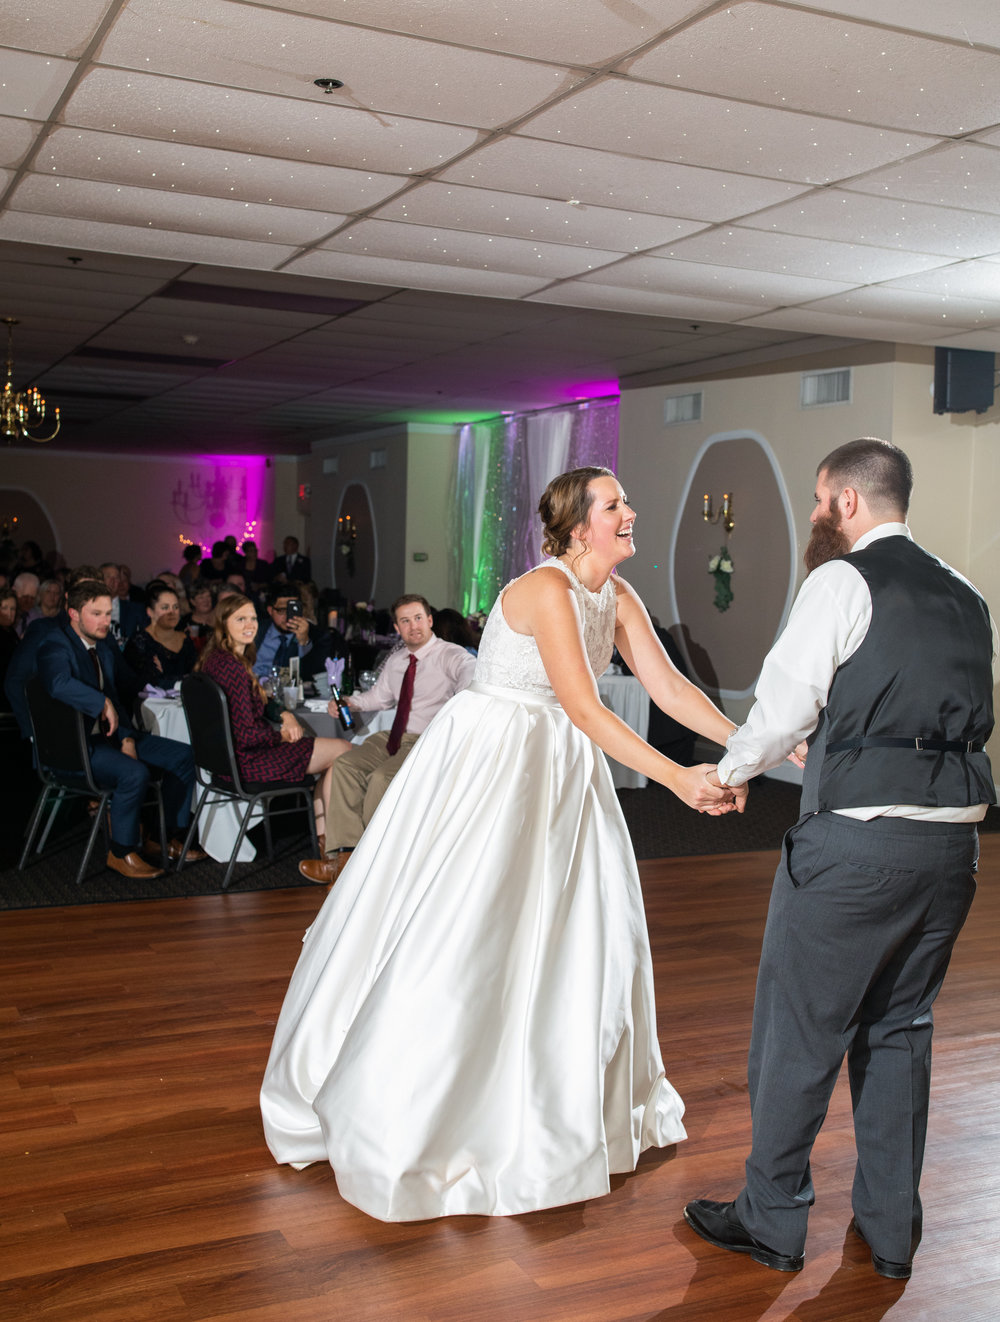 Gunkel wedding (709 of 828).jpg